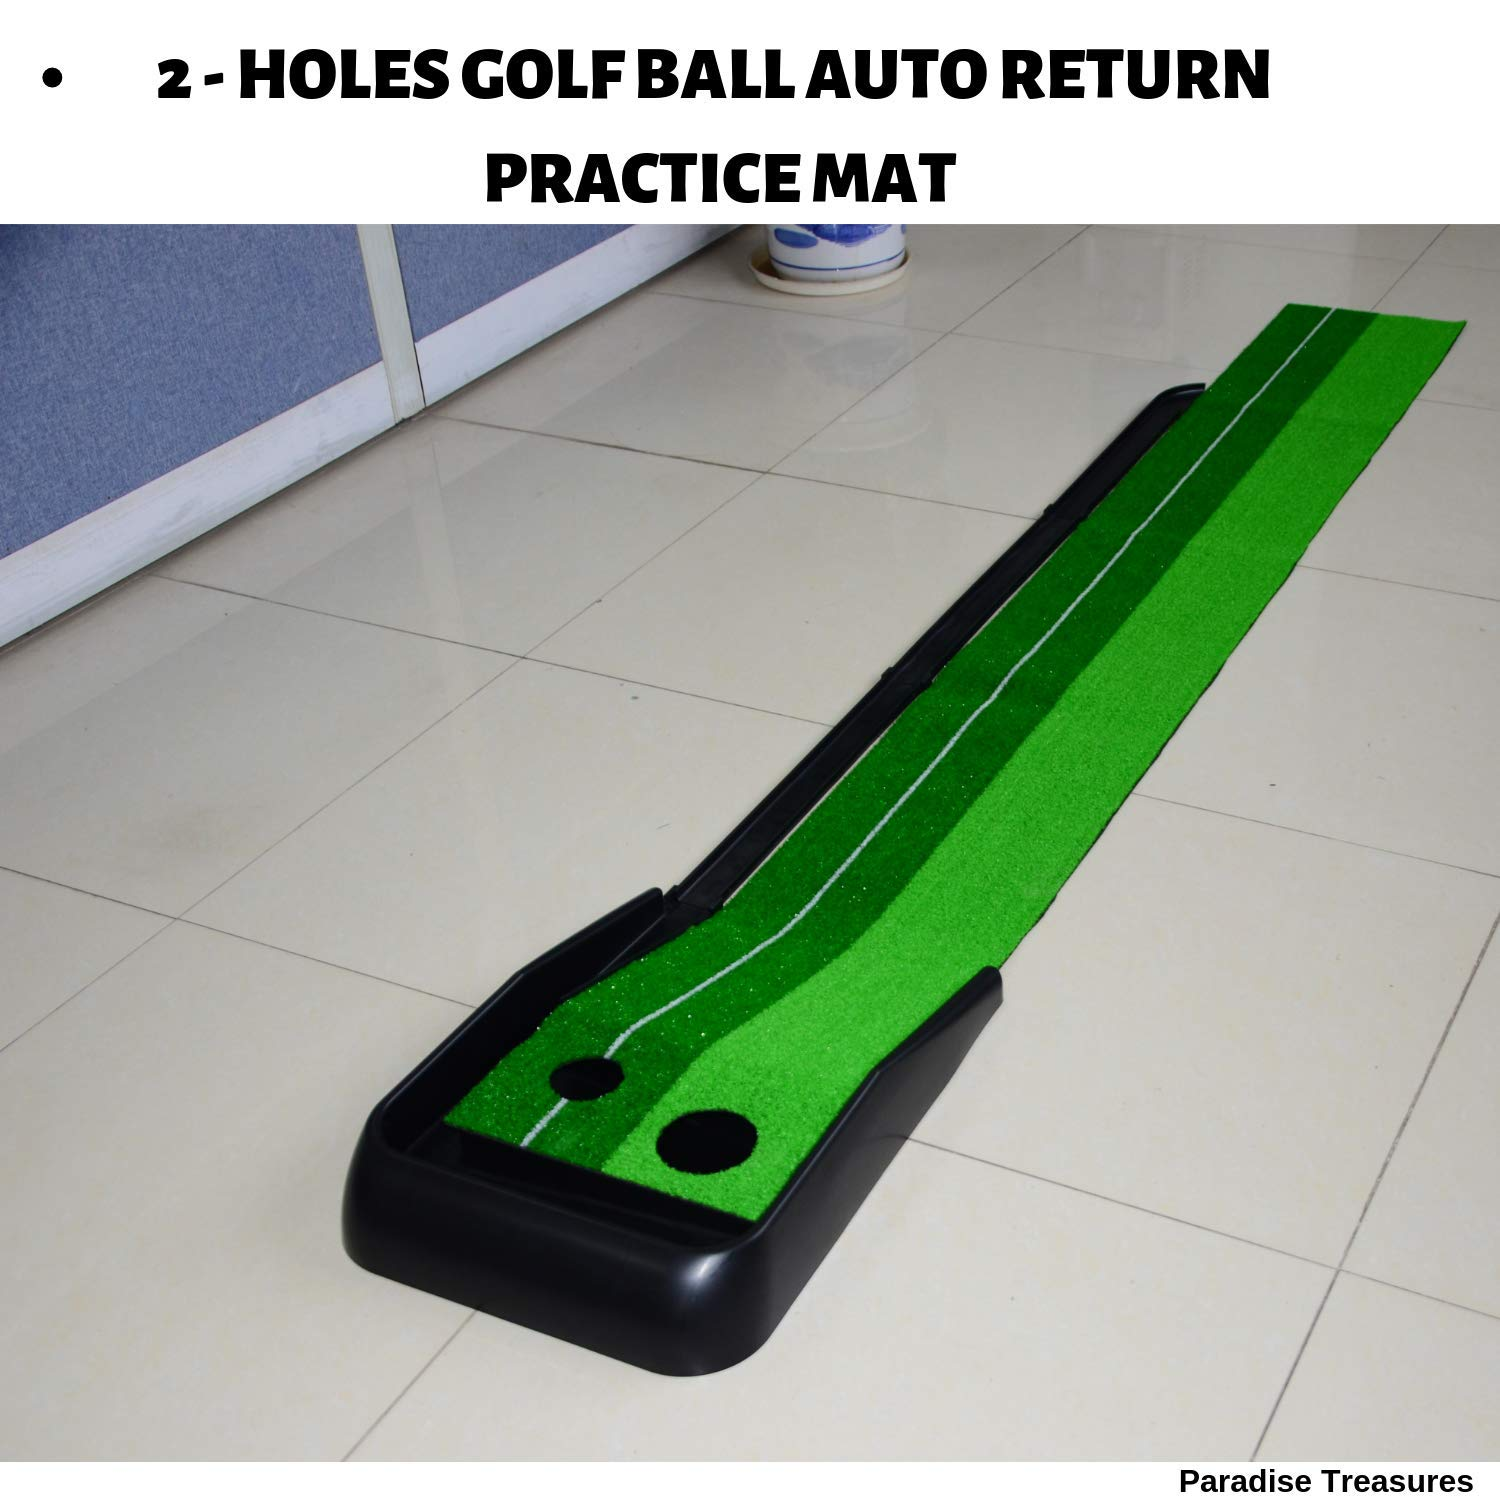 Paradise Treasures Golf Putting Green System Professional Practice Green Long Challenging Putter Indoor/Outdoor Golf Simulator Training Mat Aid Equipment Gift for Dad (1.5ftx10 auto Return Green) by Paradise Treasures (Image #1)